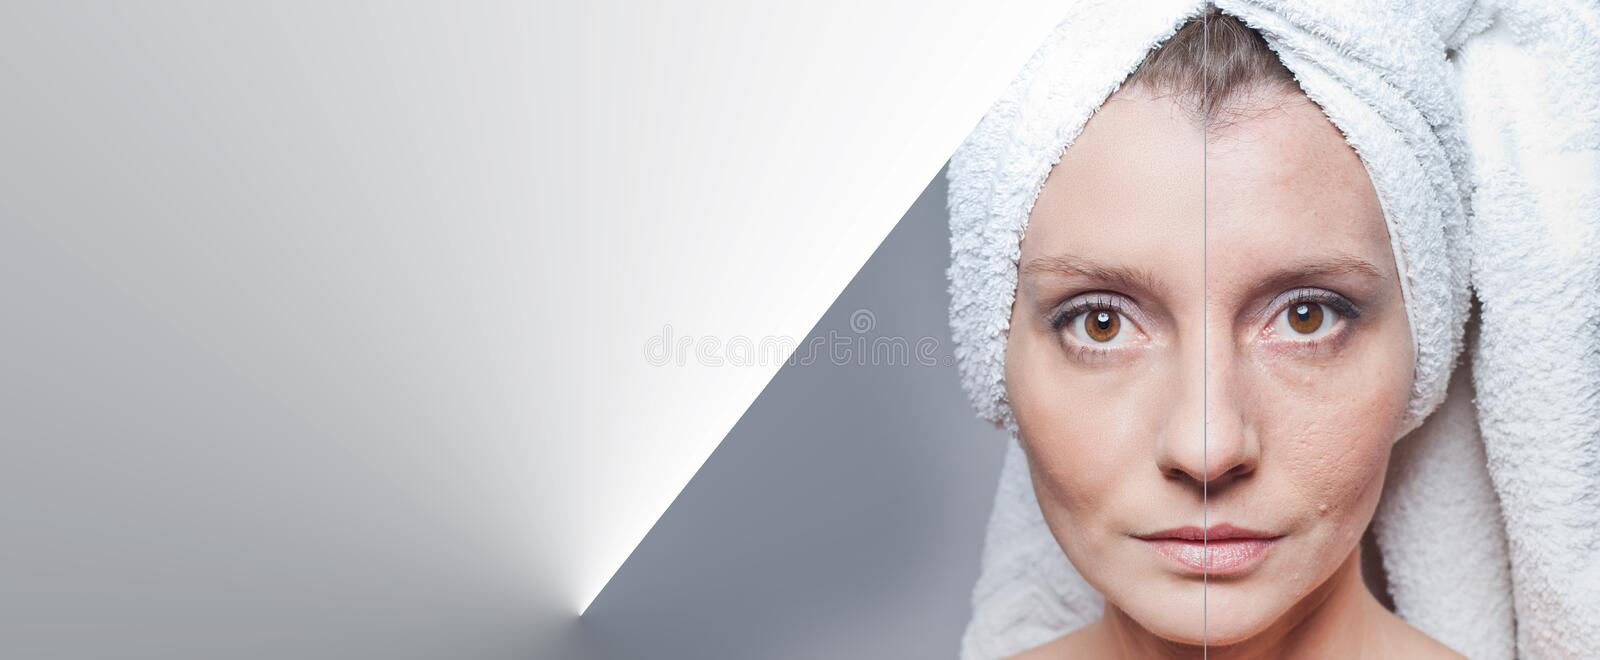 Happy woman after beauty treatment - before/after shots - skin care, anti-aging procedures, rejuvenation, lifting, tightening of. Facial skin stock images